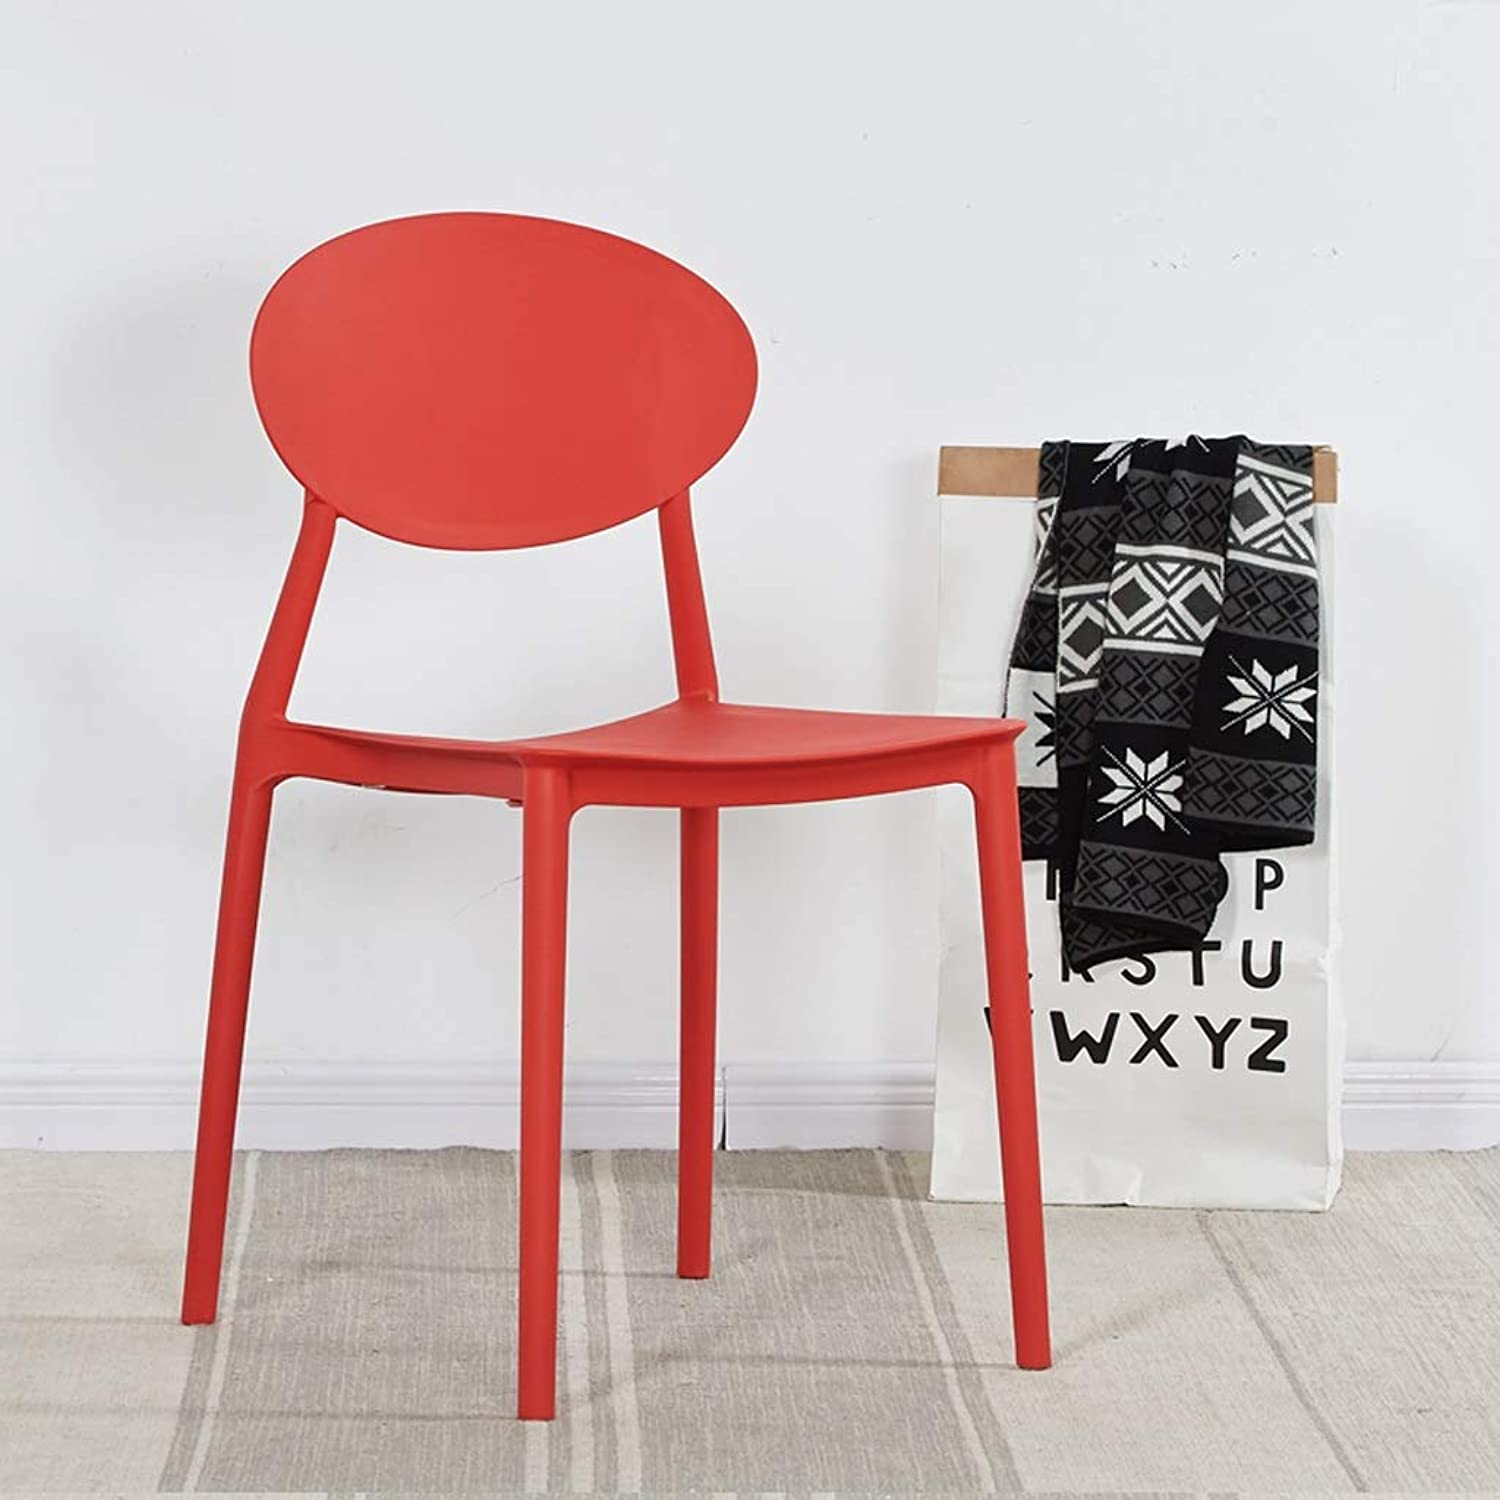 JSSFQK Chair Home Plastic Chair Coffee Shop Restaurant to Discuss Chair Simple Lazy Chair Multiple colors Chair (color   Red)